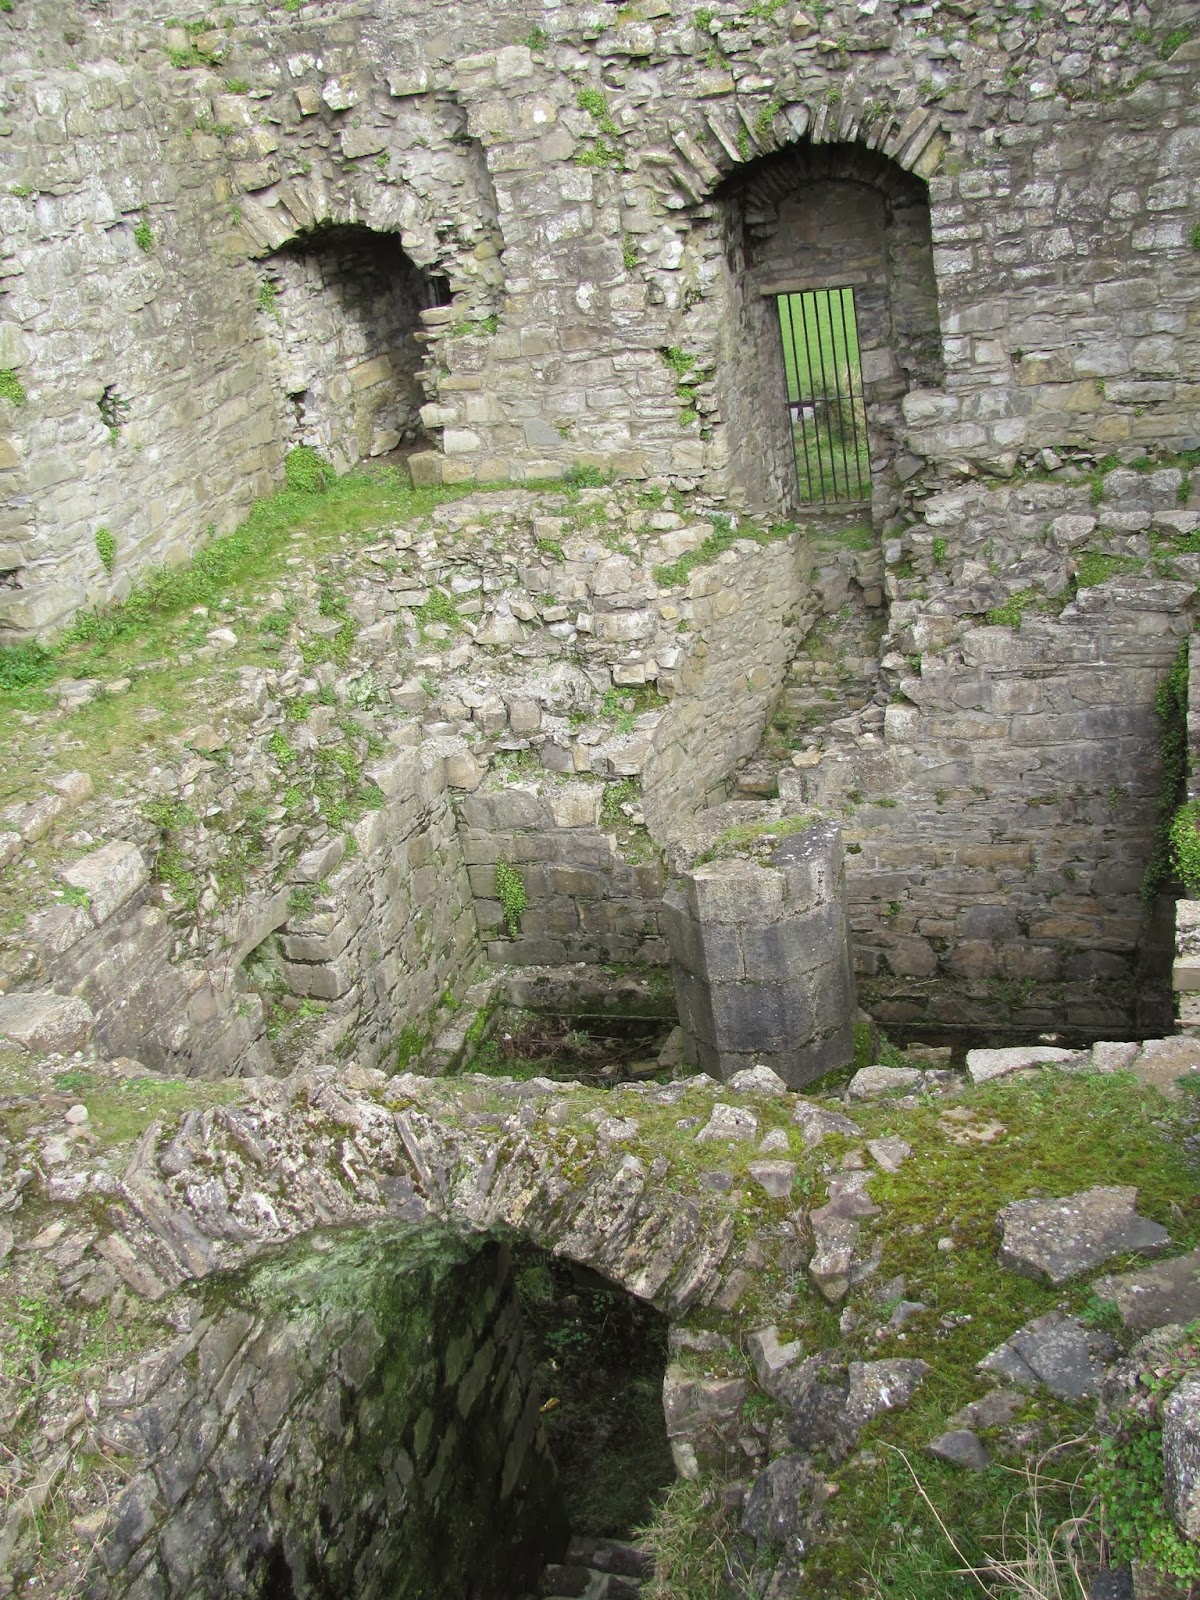 Below the Great Hall of Trim Castle in Trim, Ireland